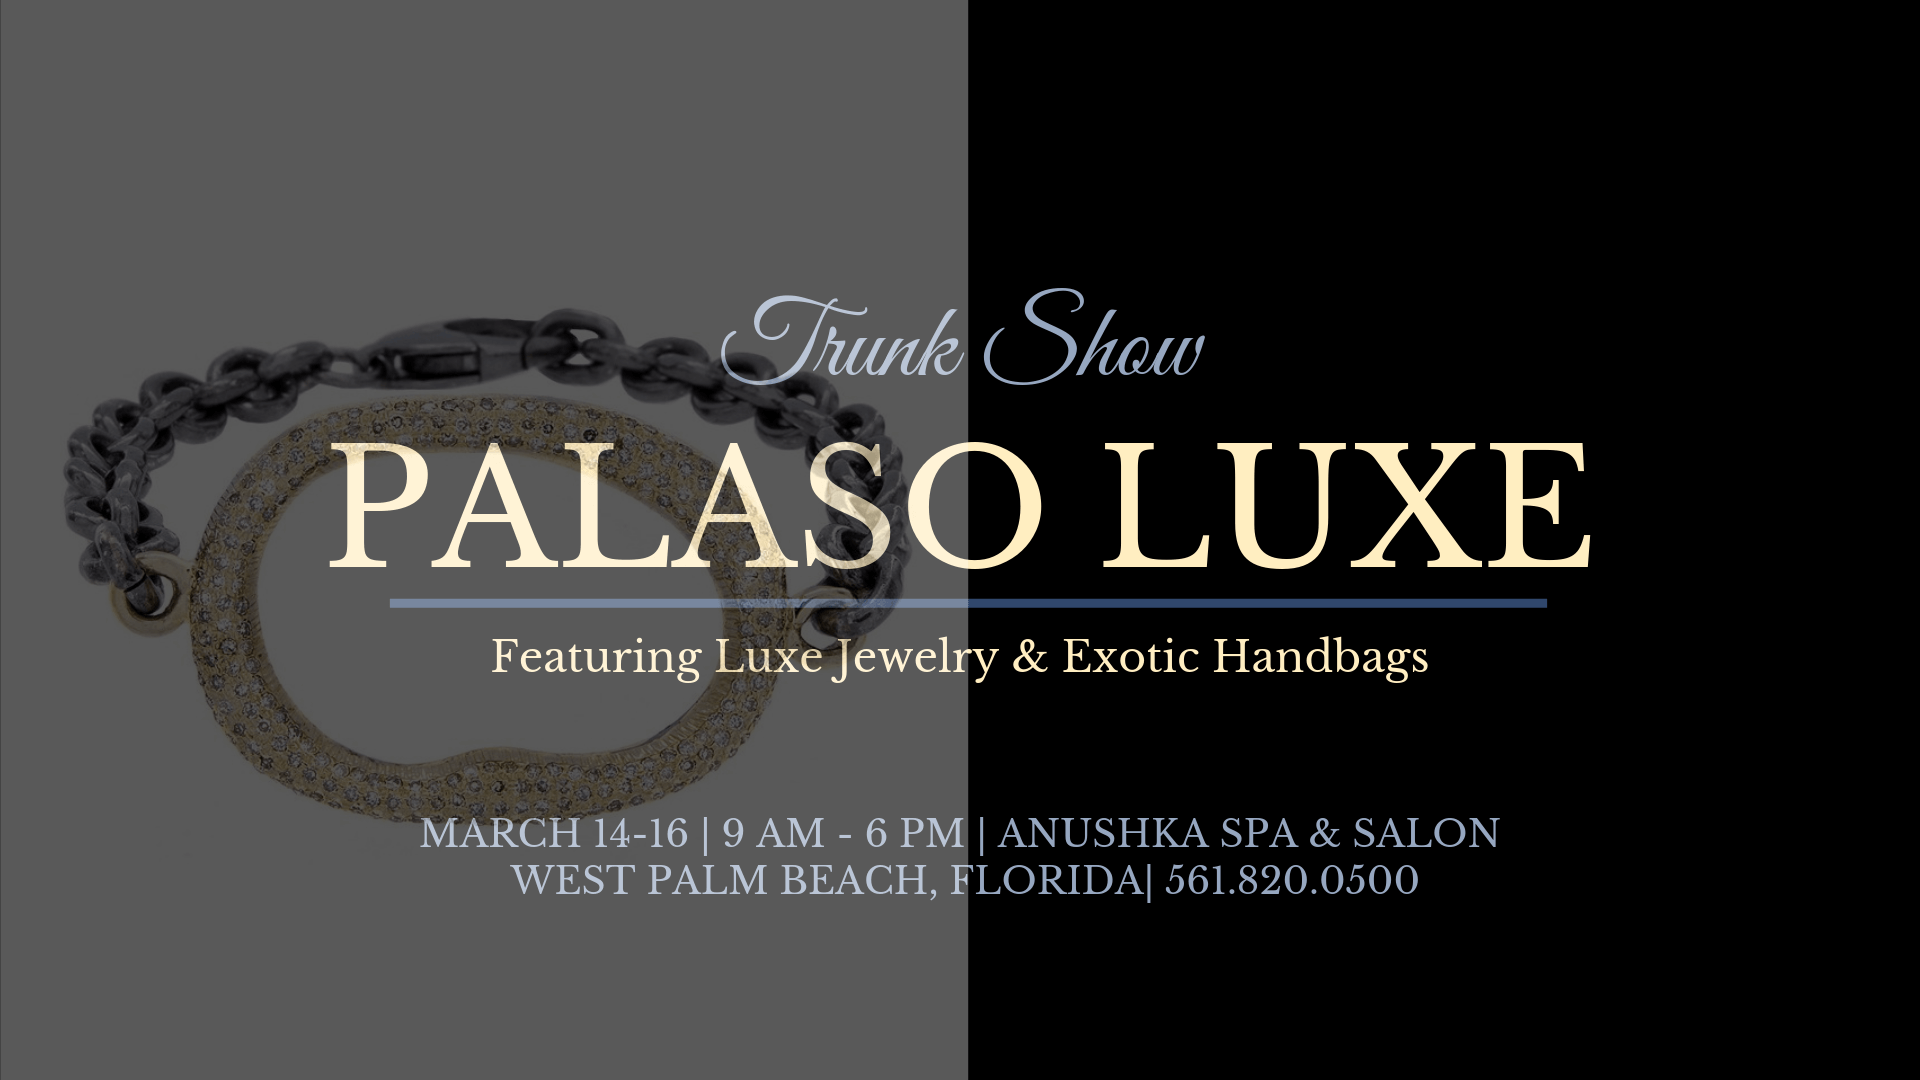 Palaso Luxe March Trunk Show at Anushka Spa, Salon, & Cosmedical Centre in West Palm Beach, FL